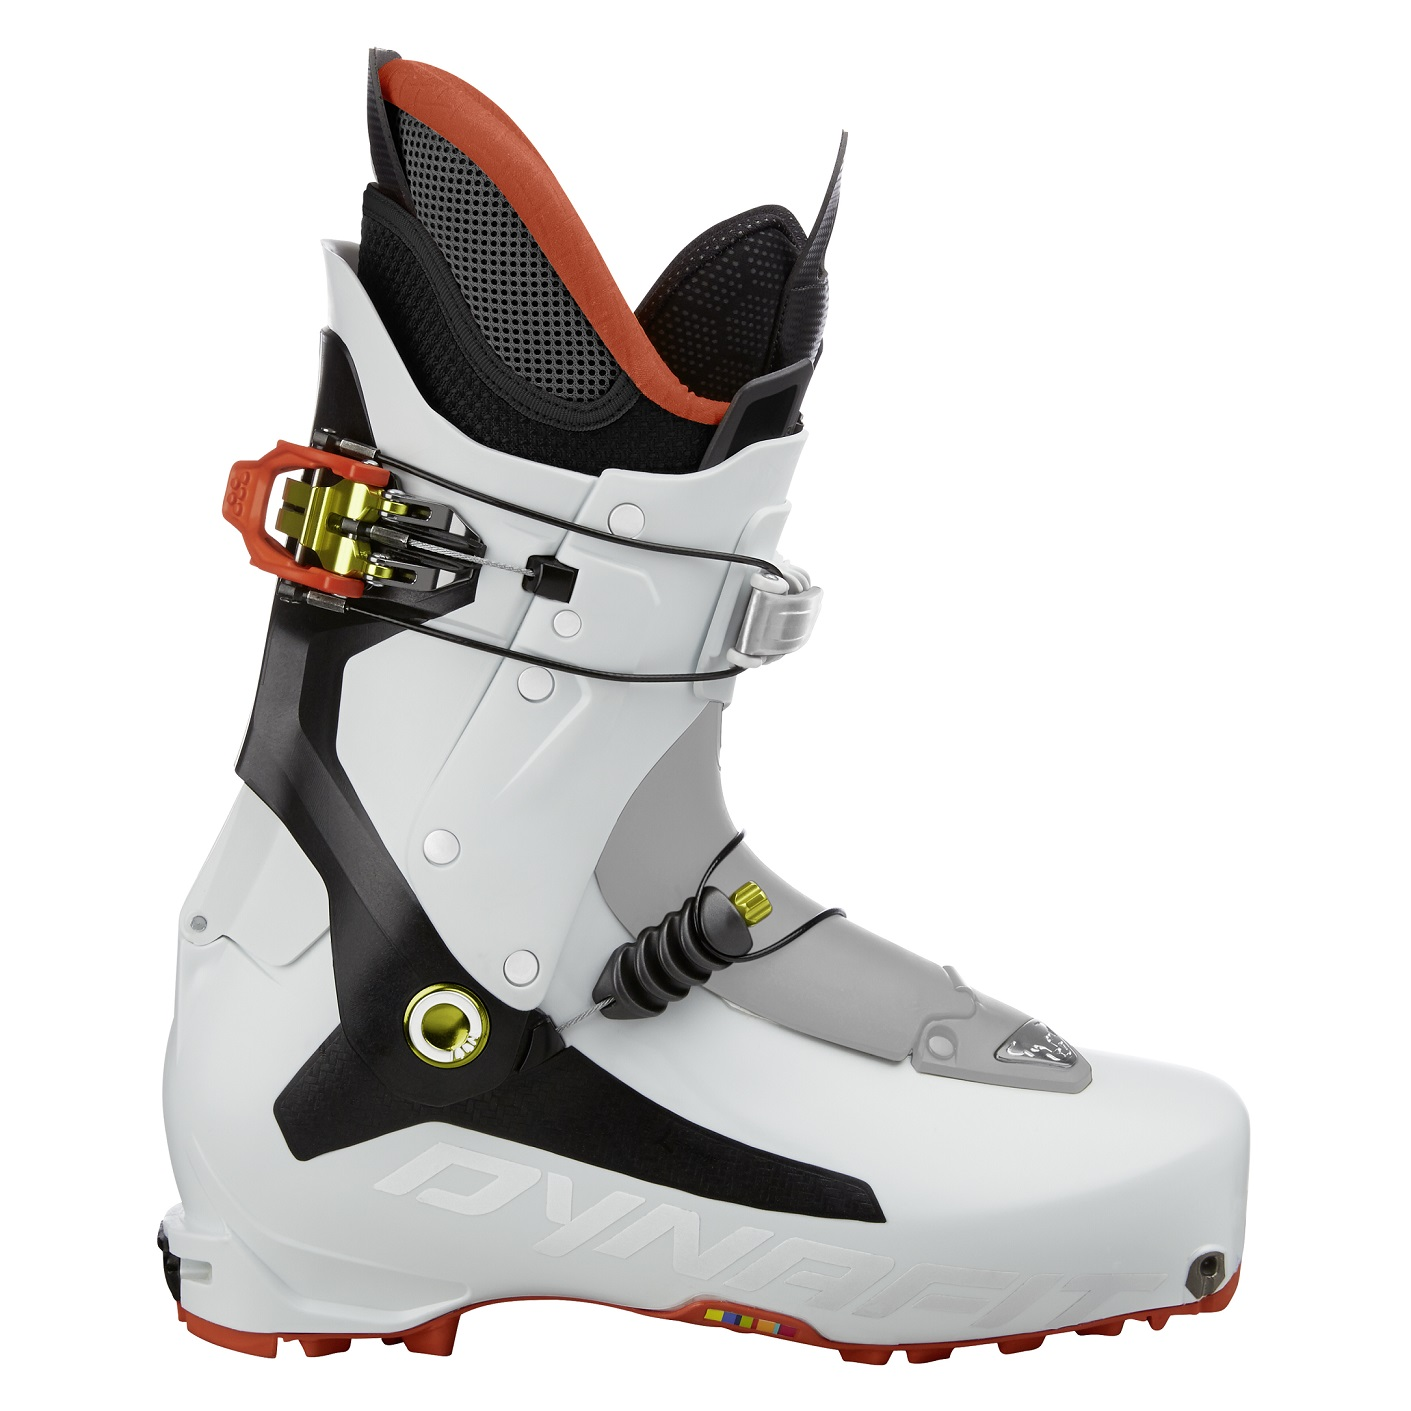 Dynafit Tlt7 Expedition in addition 761739 likewise Instant likewise Alpinestars together with Noi europei. on alpine clothing